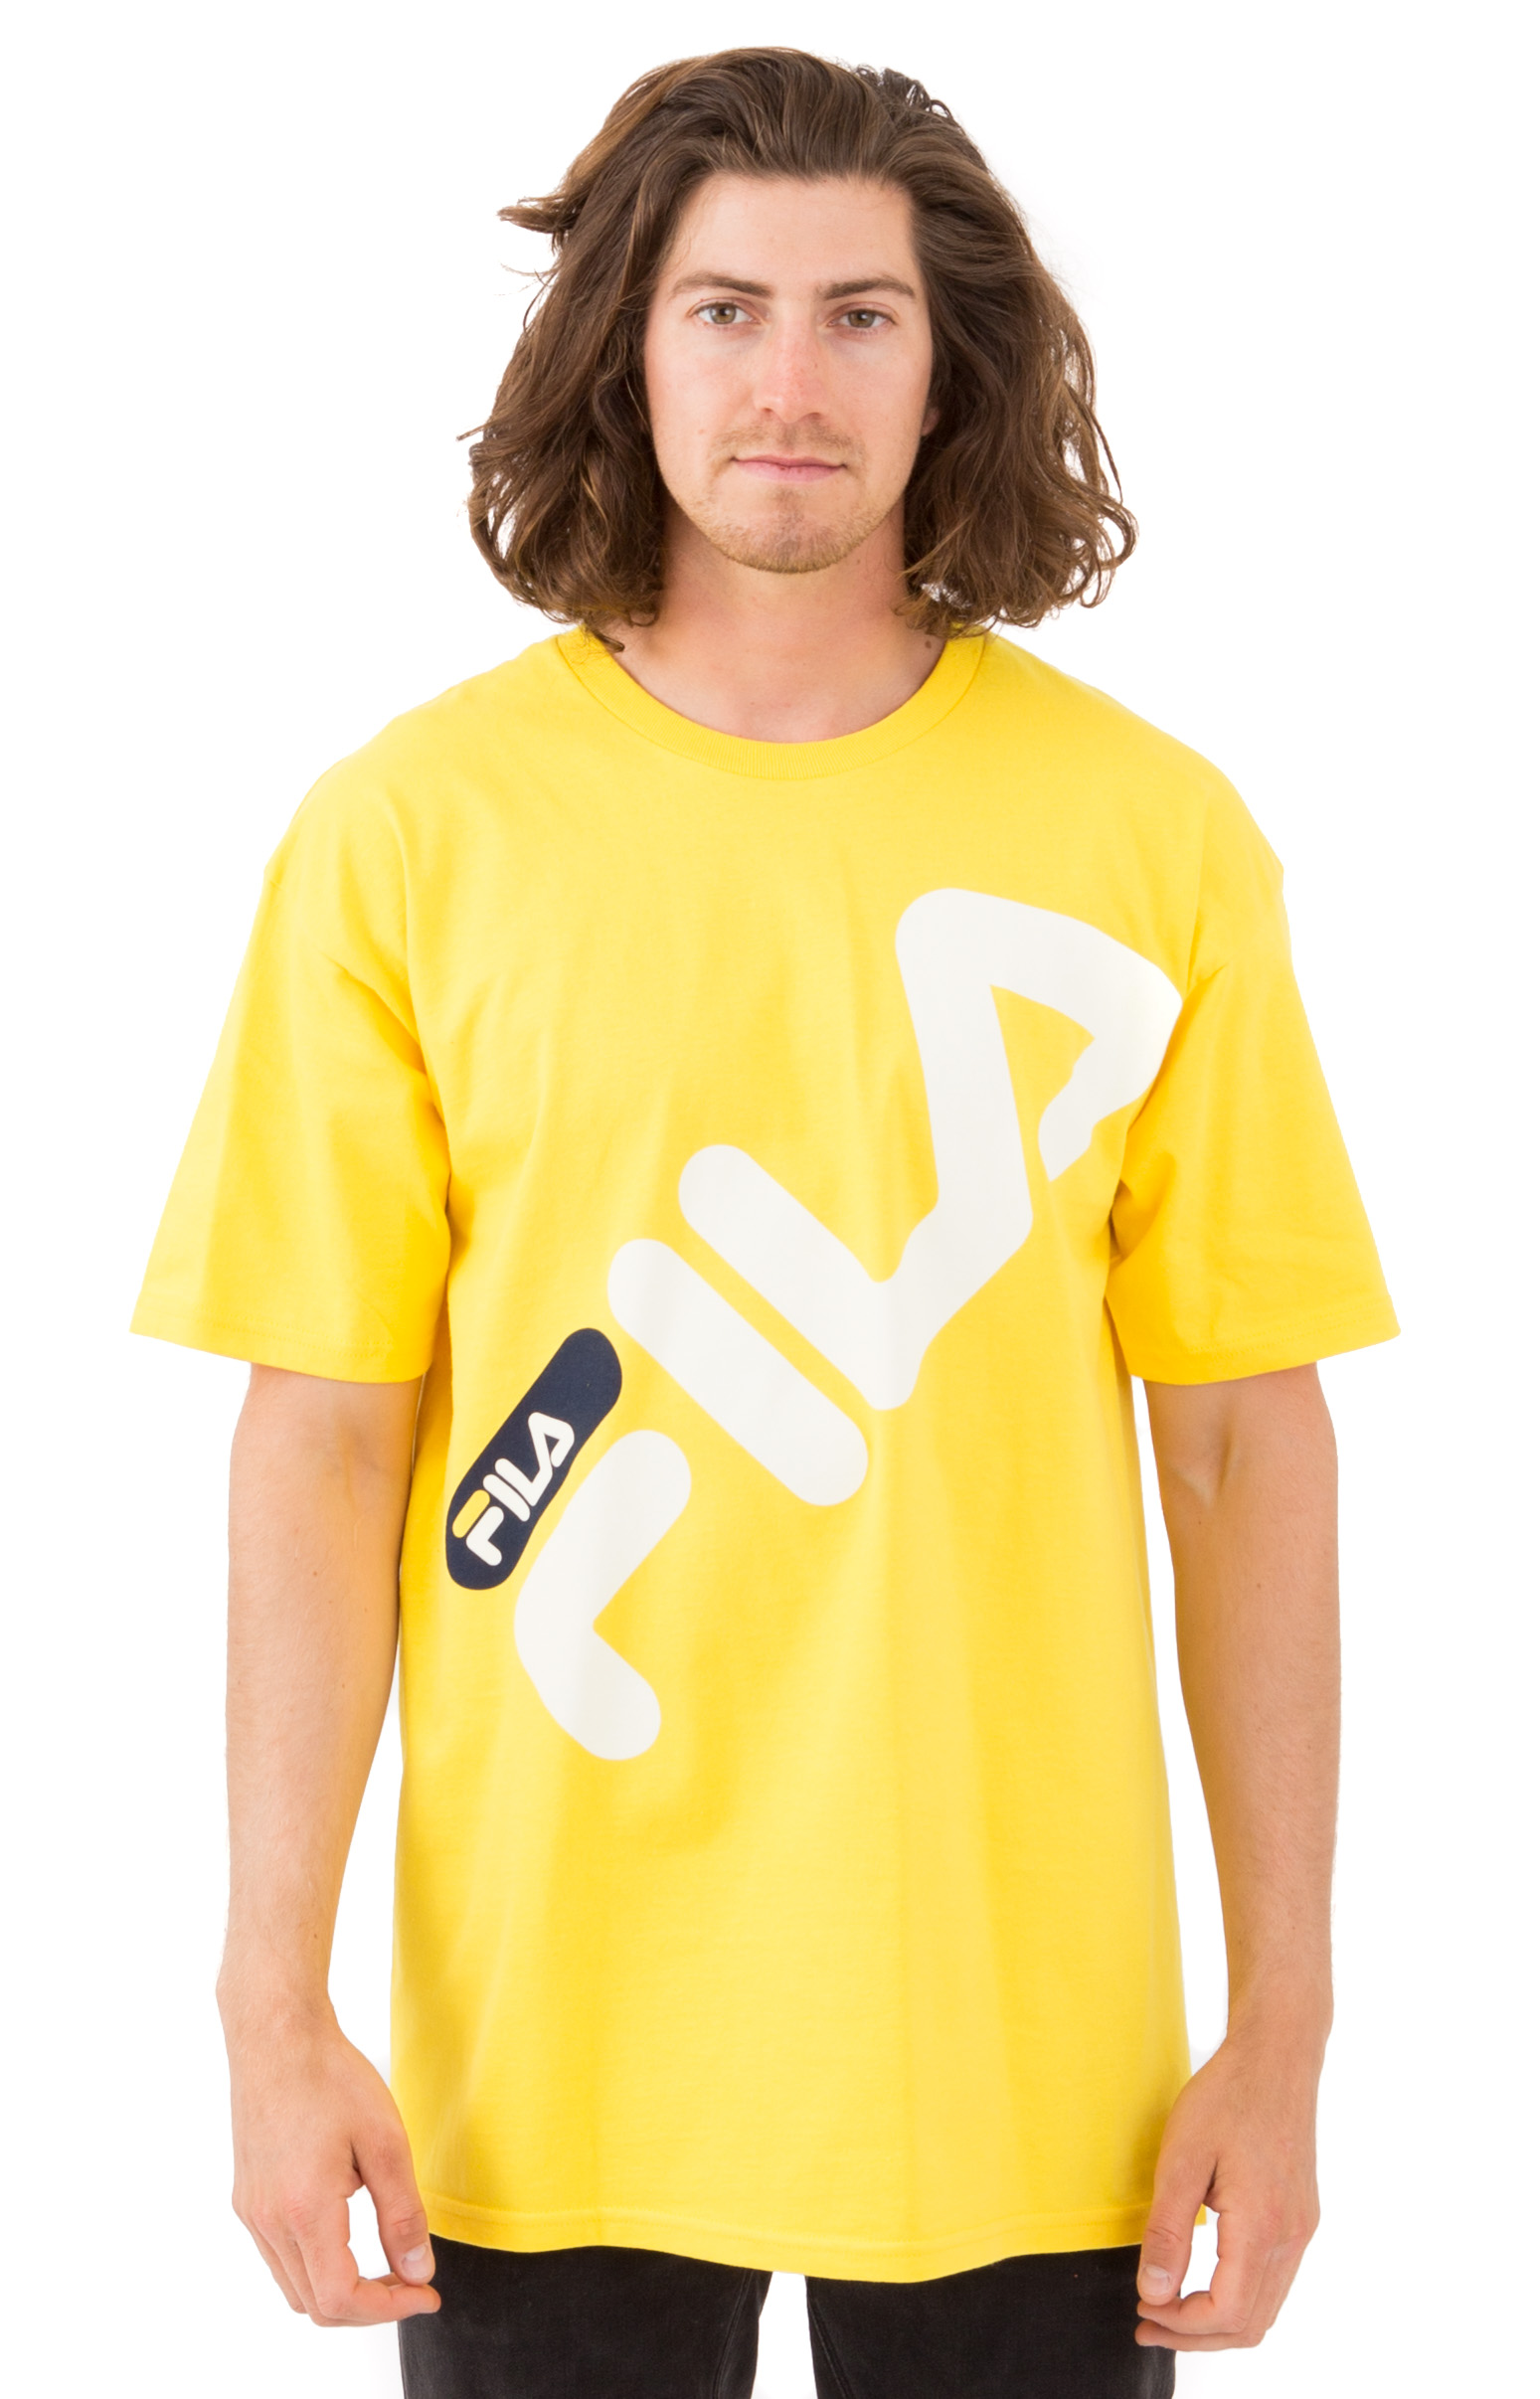 Micah T-Shirt - Lemon